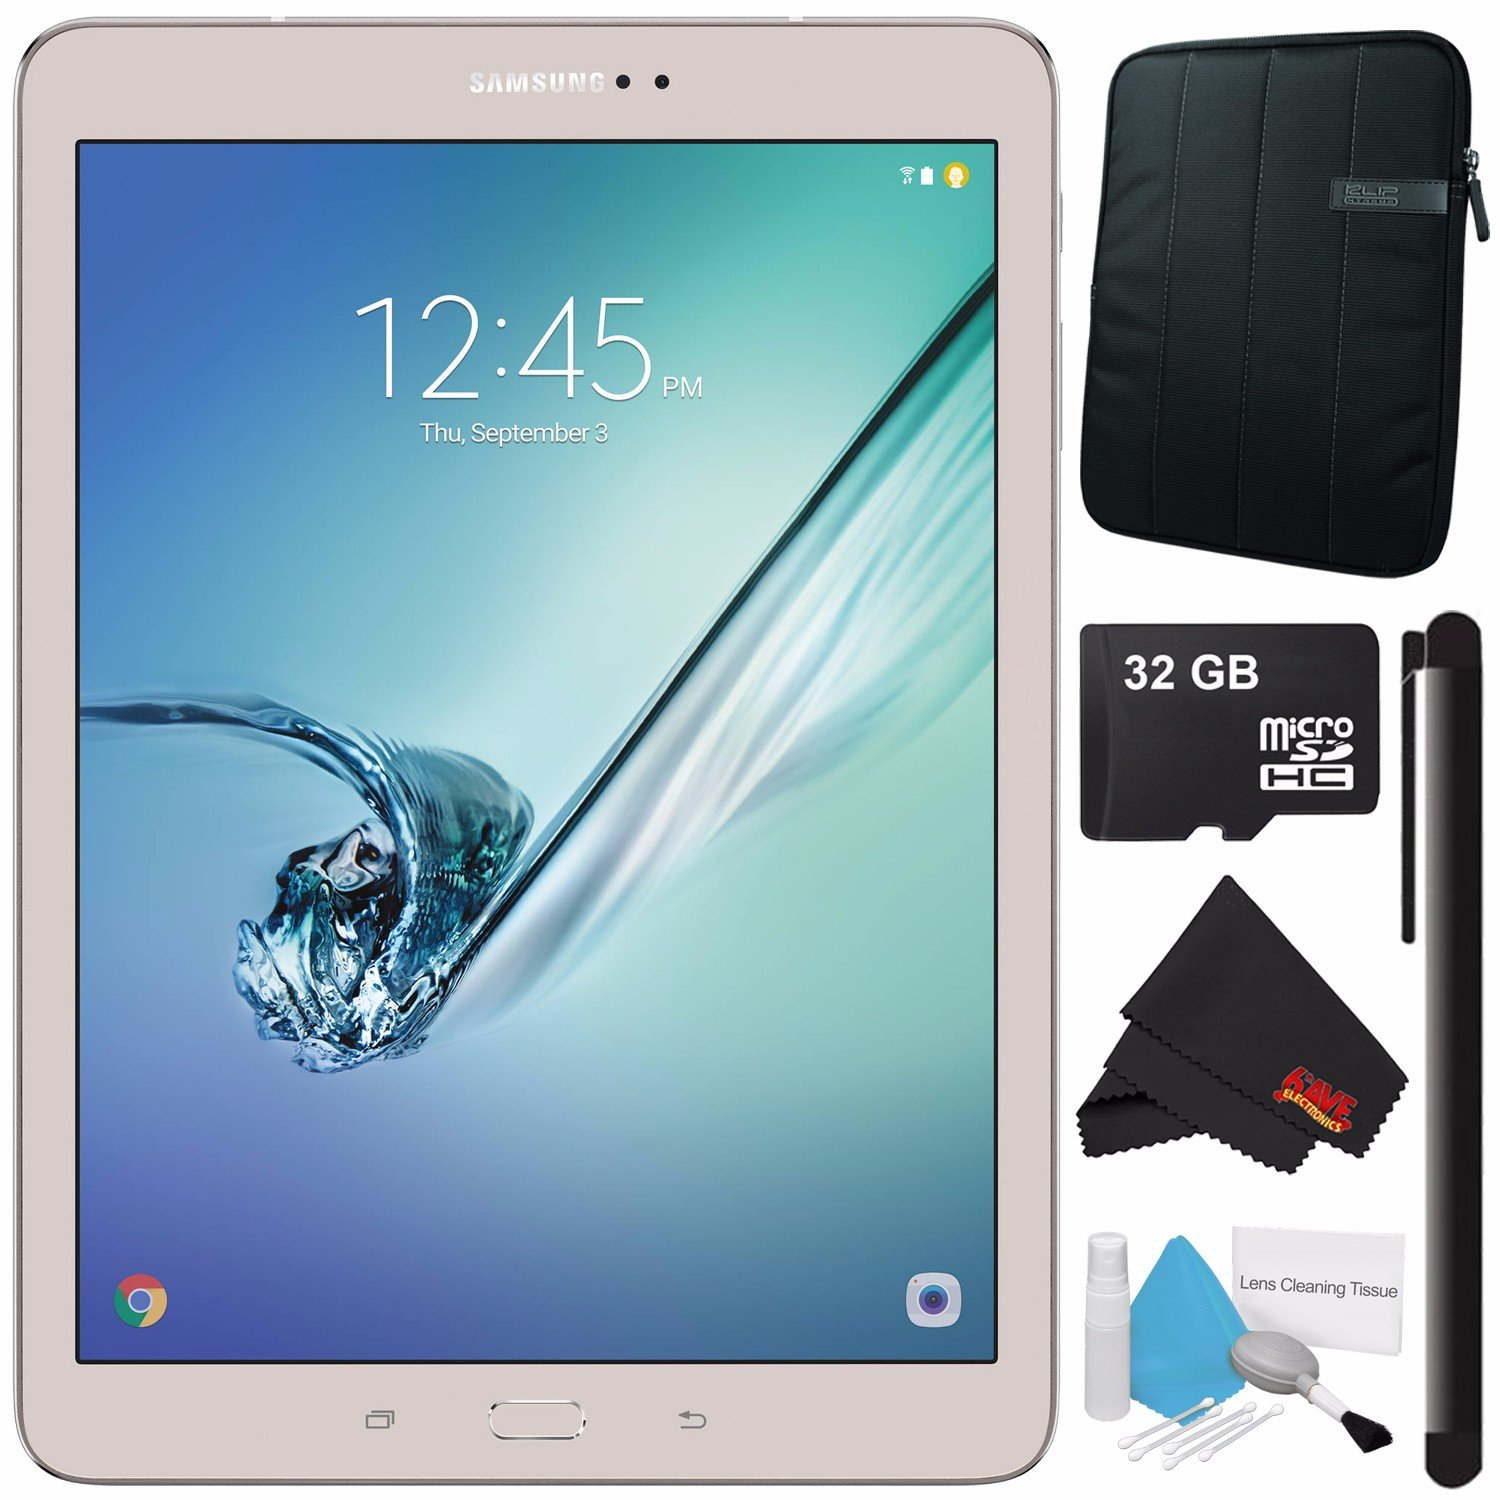 Samsung 32GB Galaxy Tab S2 9.7'' Wi-Fi Tablet (Gold) SM-T813NZDEXAR + Universal Stylus for Tablets + Tablet Neoprene Sleeve 10.1'' Case (Black) + 32GB Class 10 Micro SD Memory Card Bundle